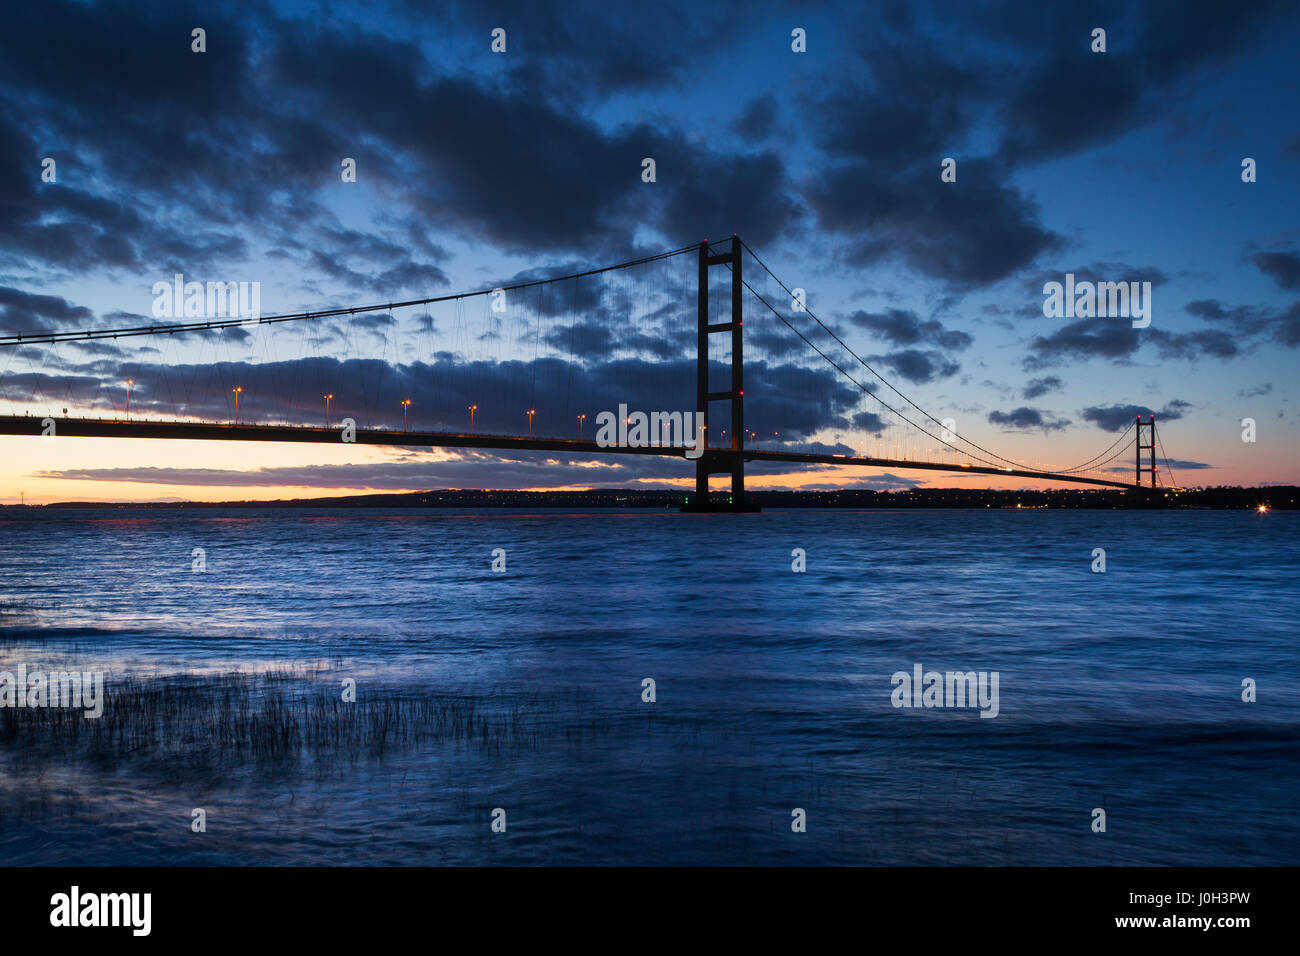 UK Weather: Barton-upon-Humber, North Lincolnshire, UK. 12th April 2017. The Humber Bridge at dusk. Credit: LEE - Stock Image